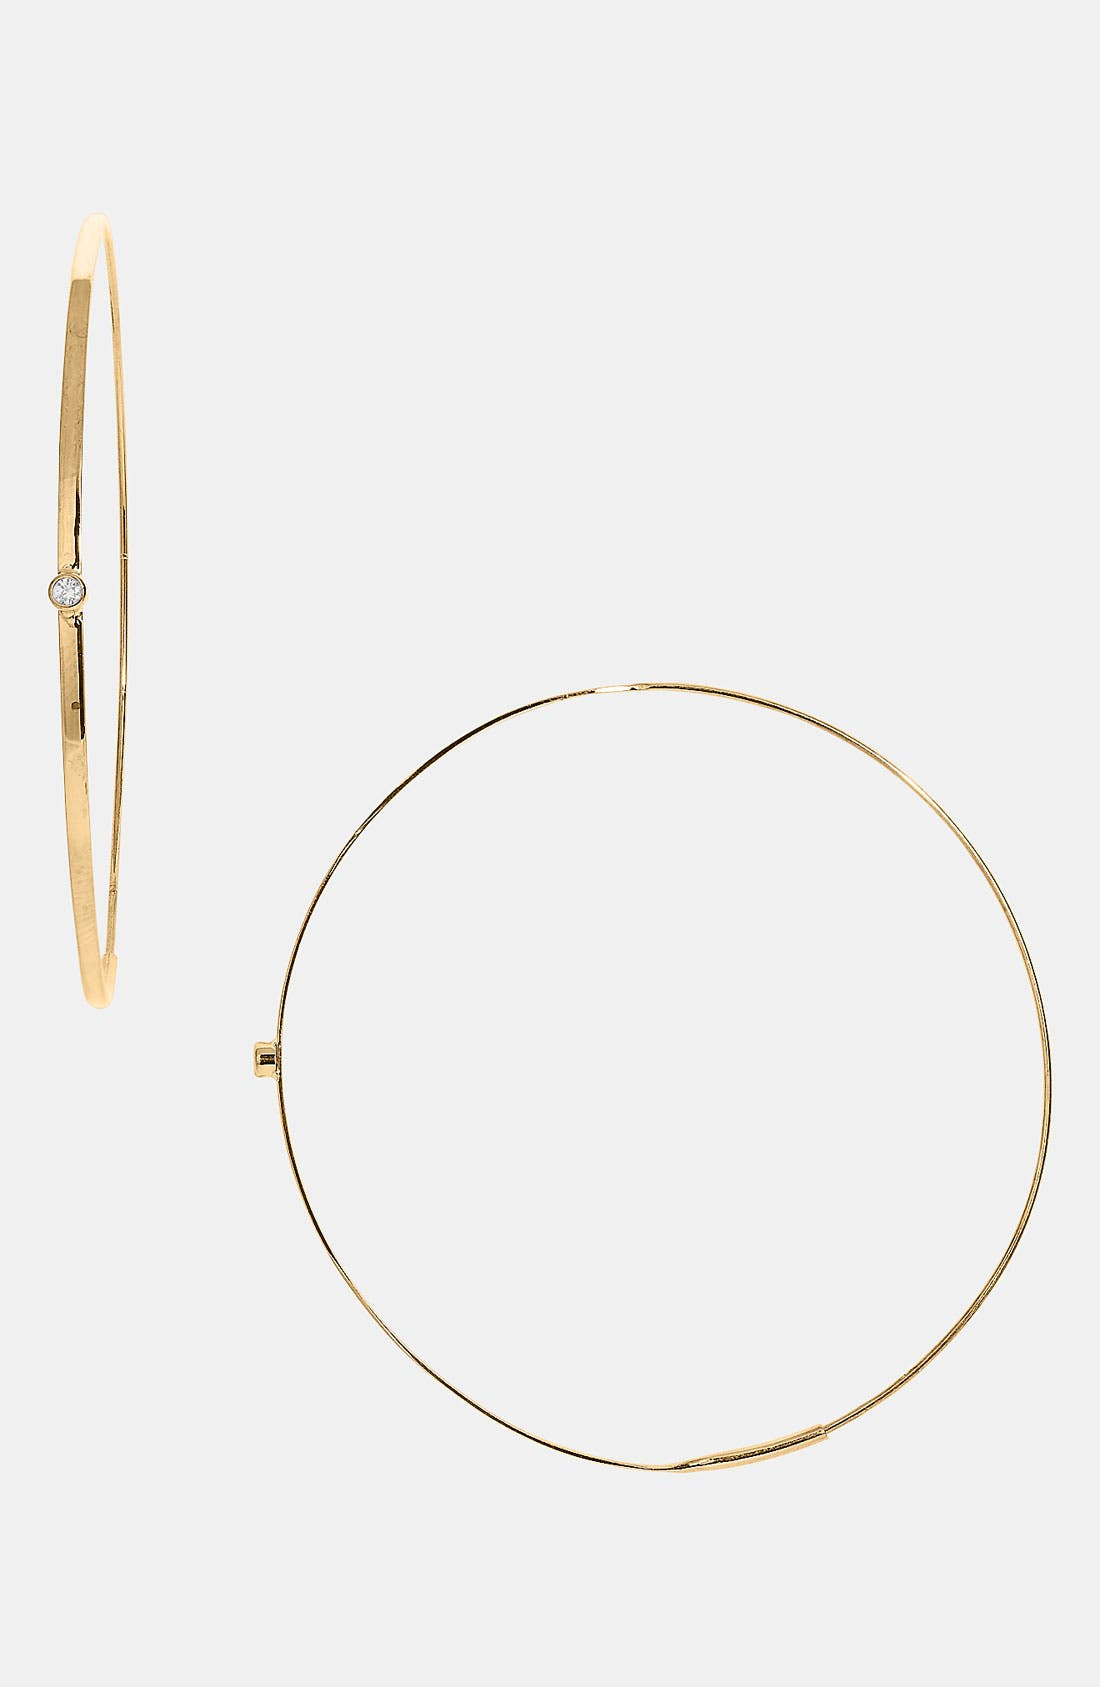 Alternate Image 1 Selected - Lana Jewelry 'Medium Magic' Diamond Hoop Earrings (Nordstrom Exclusive)